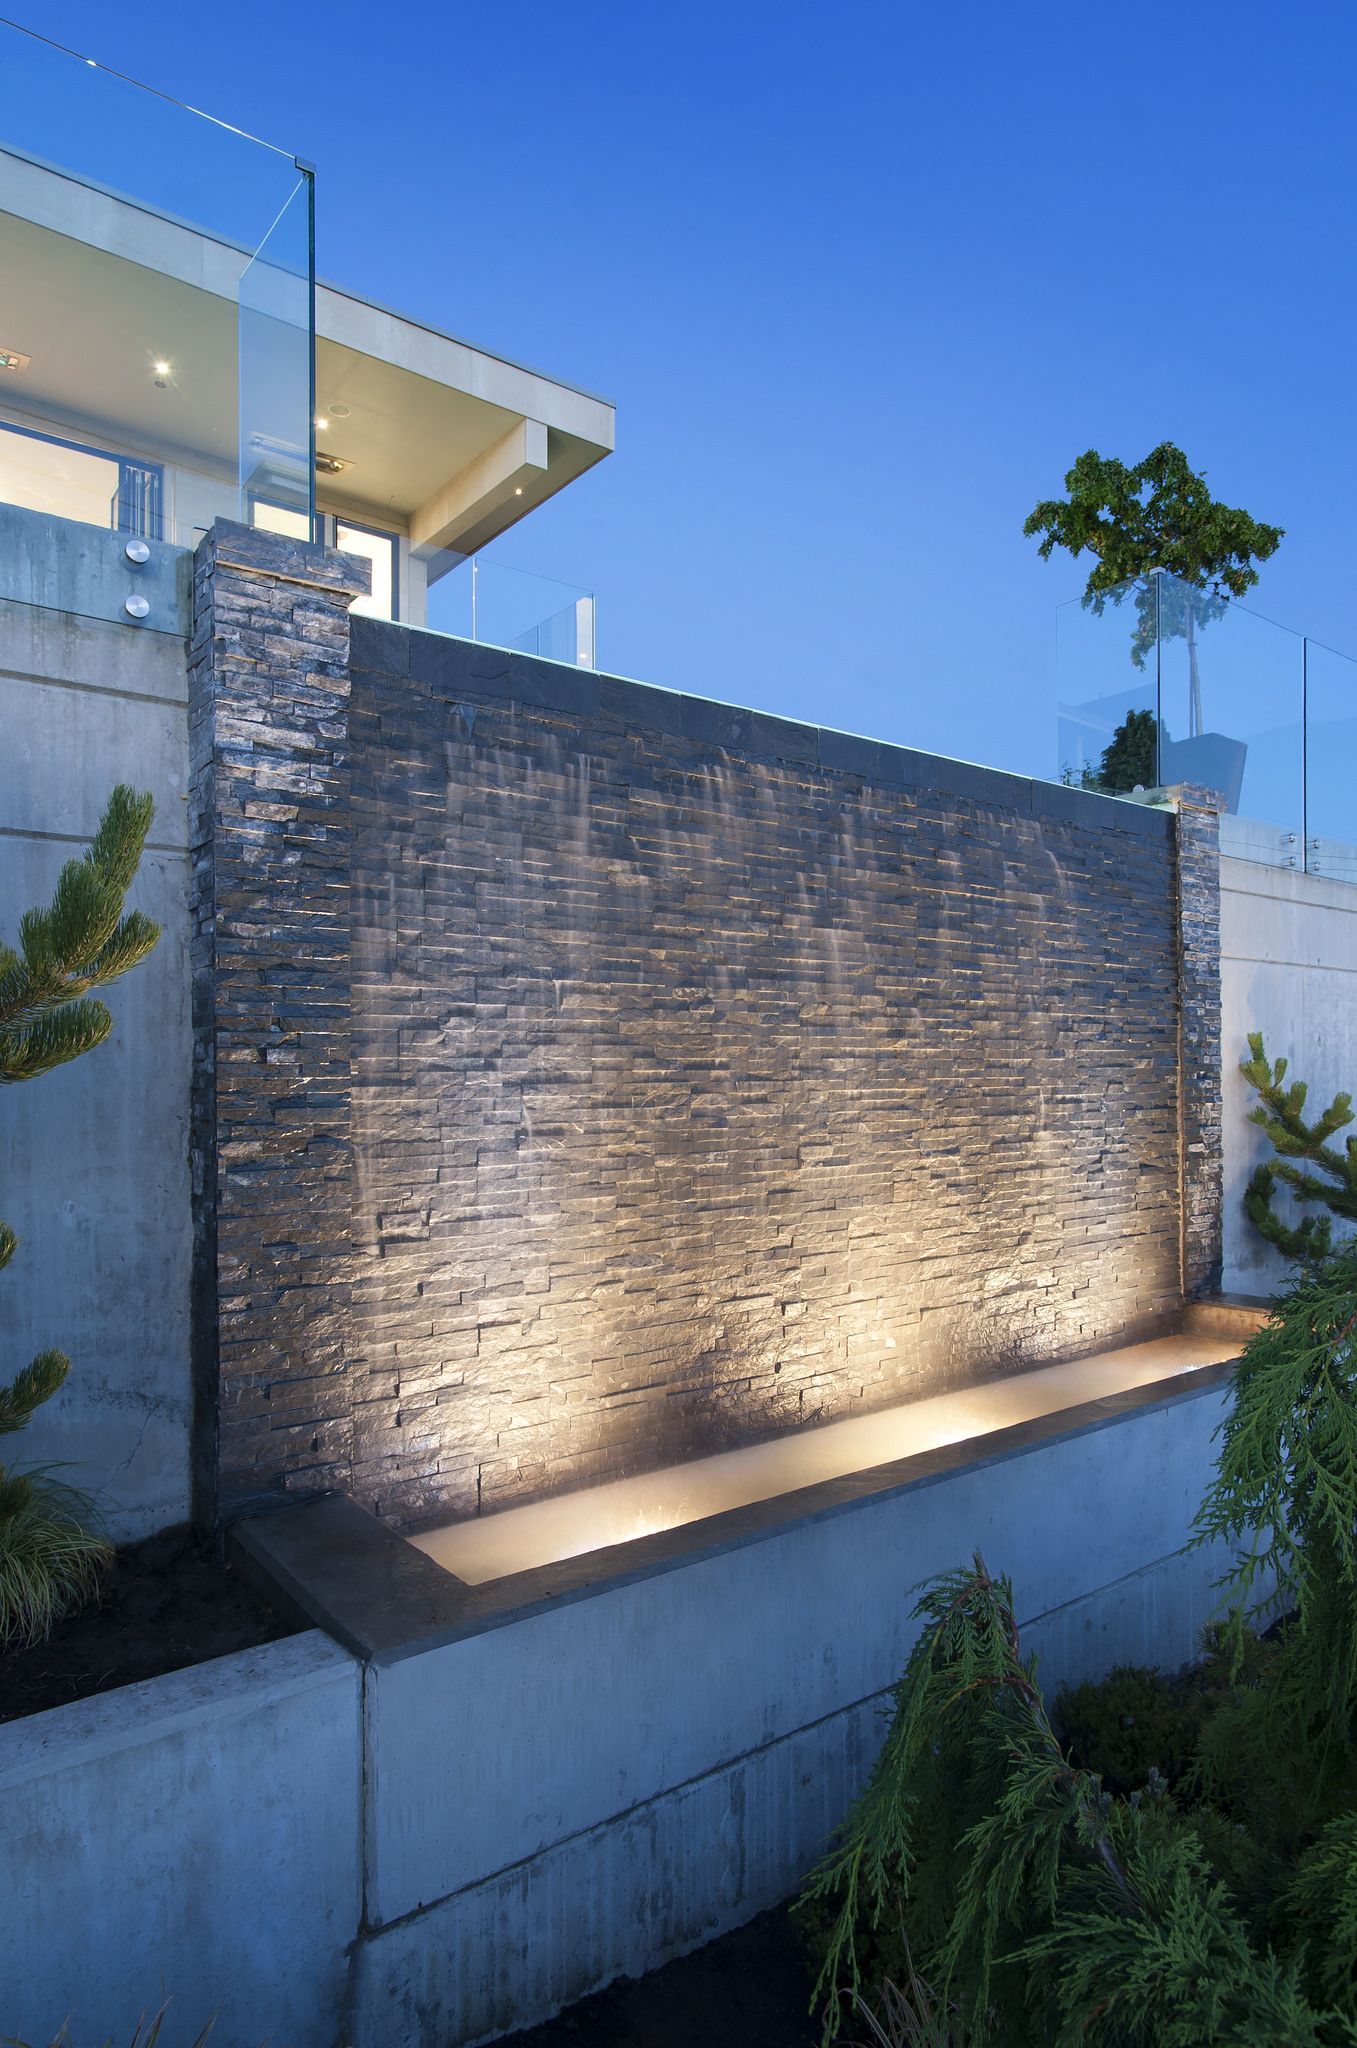 Diy patio water wall the interior frugalista diy patio water wall - Alka Pool This Impressive Water Wall Acts As A Water Feature Bringing An Added Elegance Outdoor